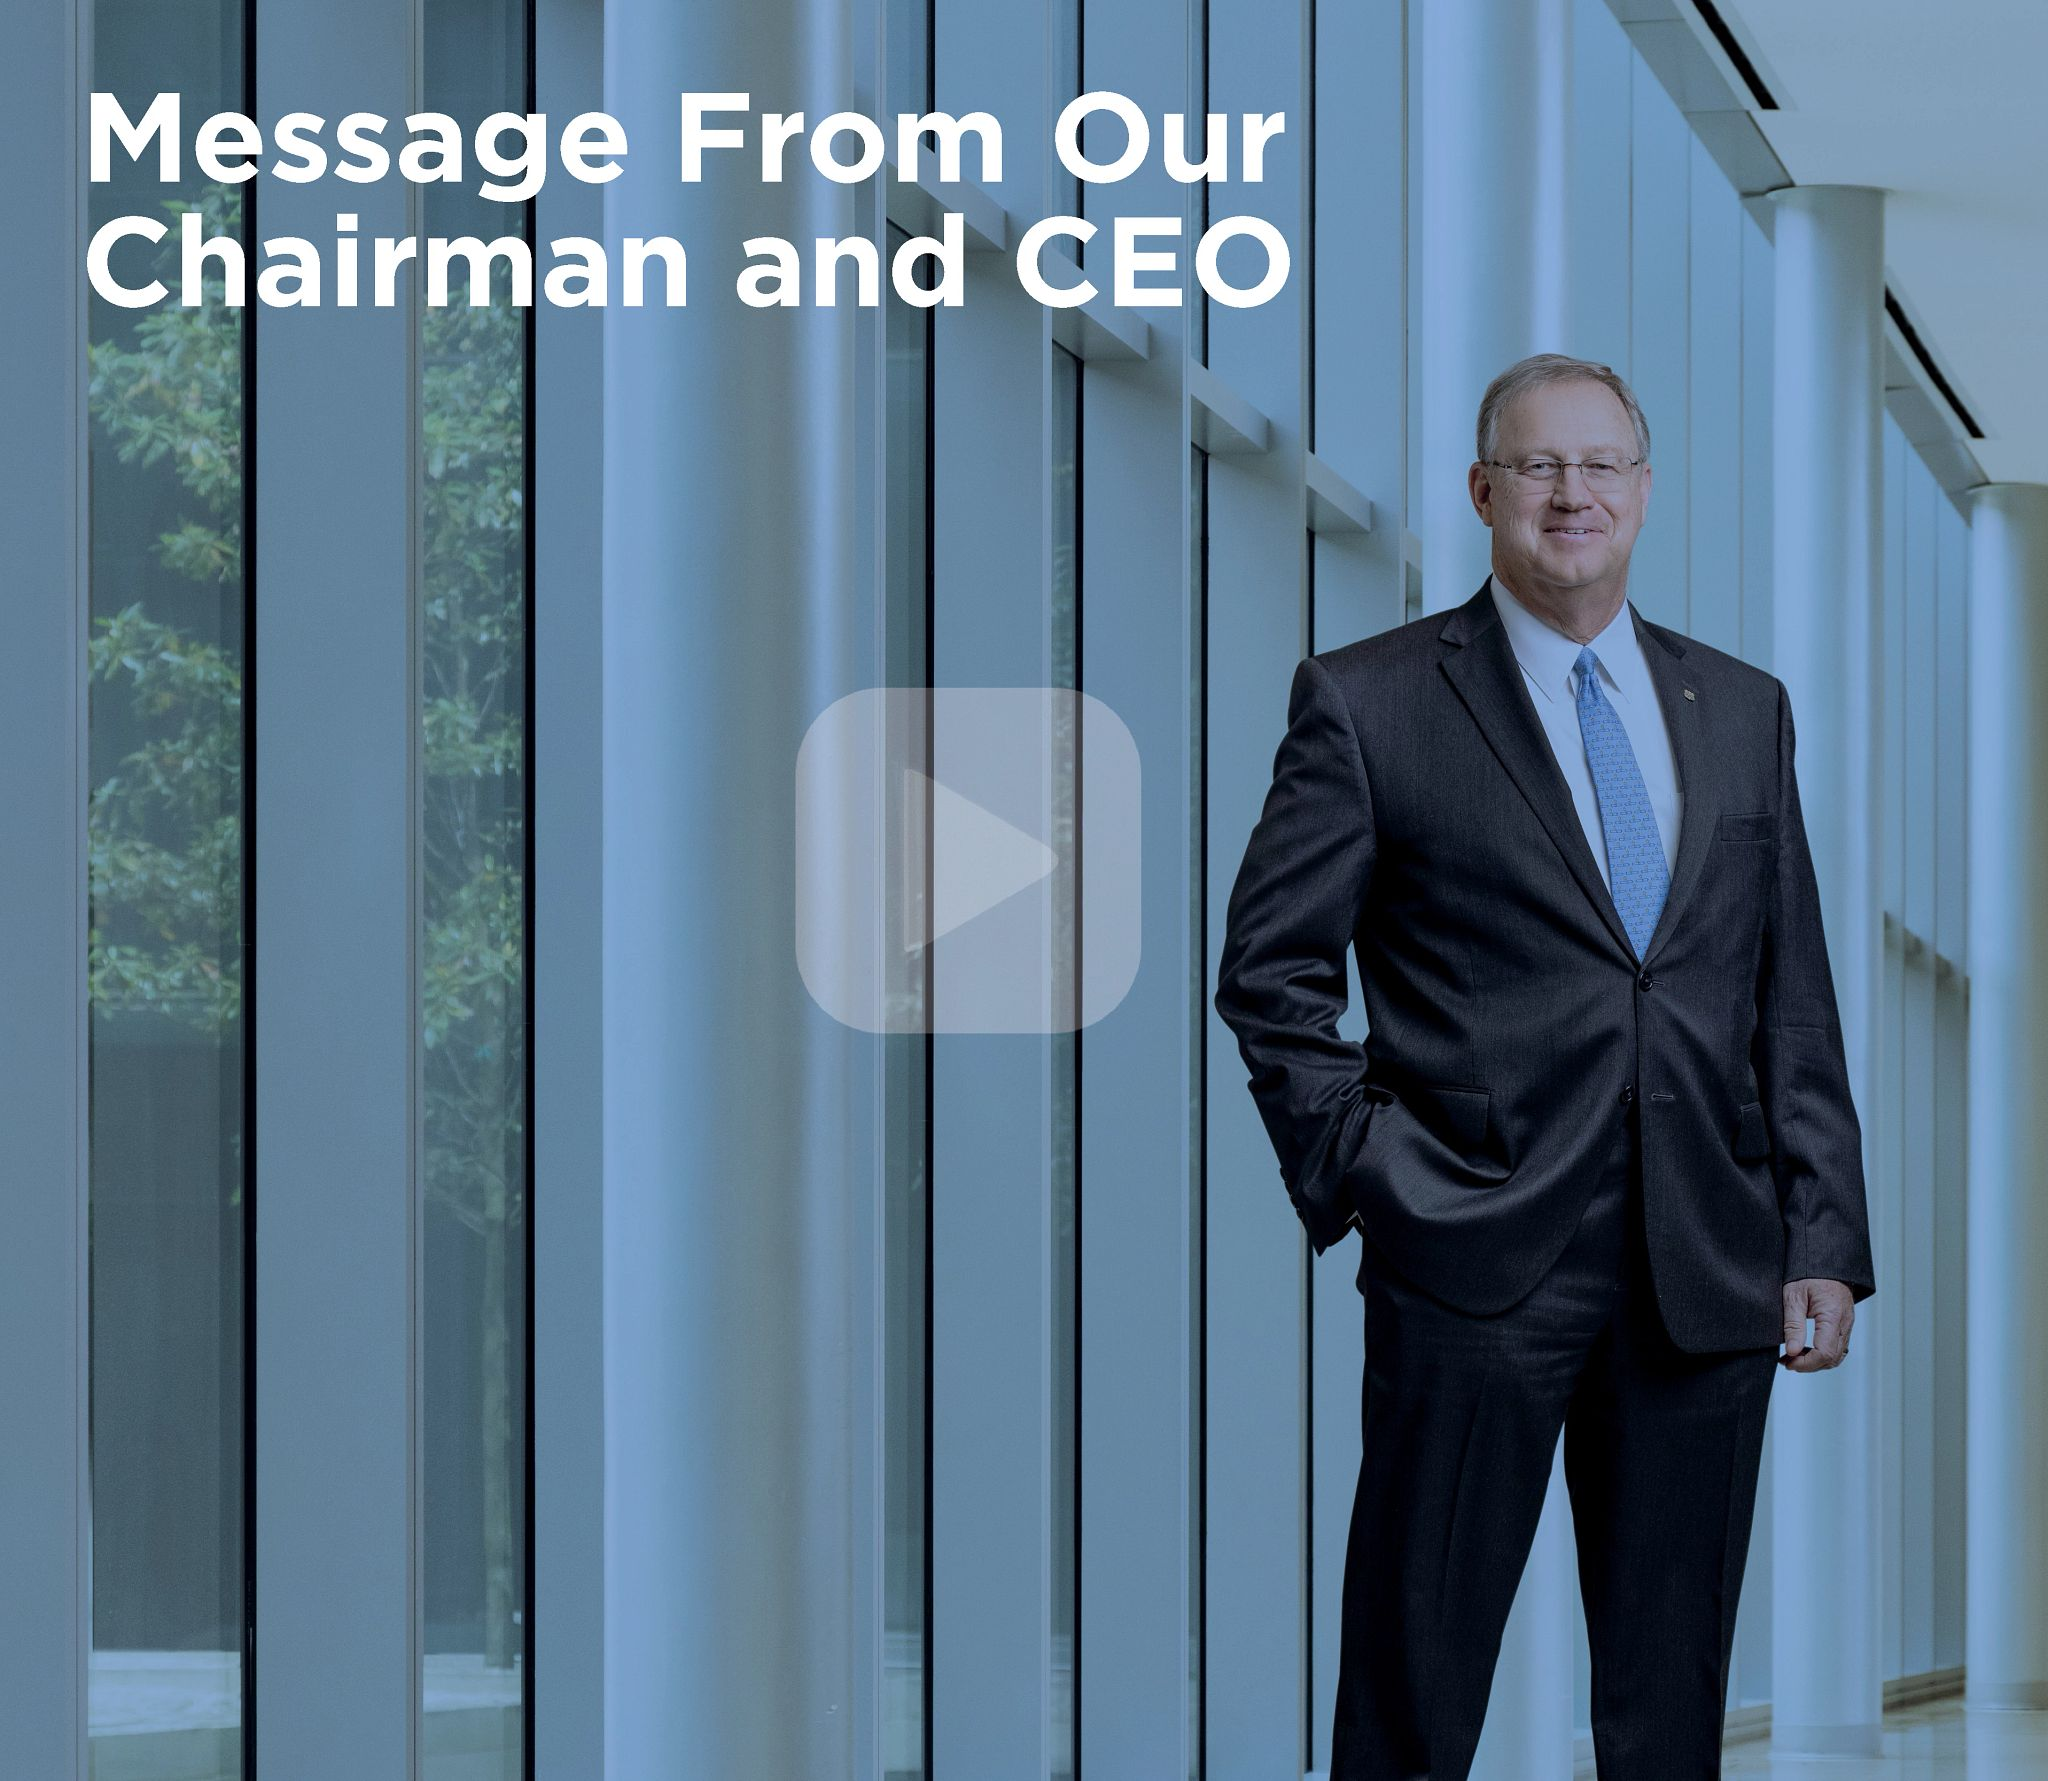 Message From Our Chairman and CEO